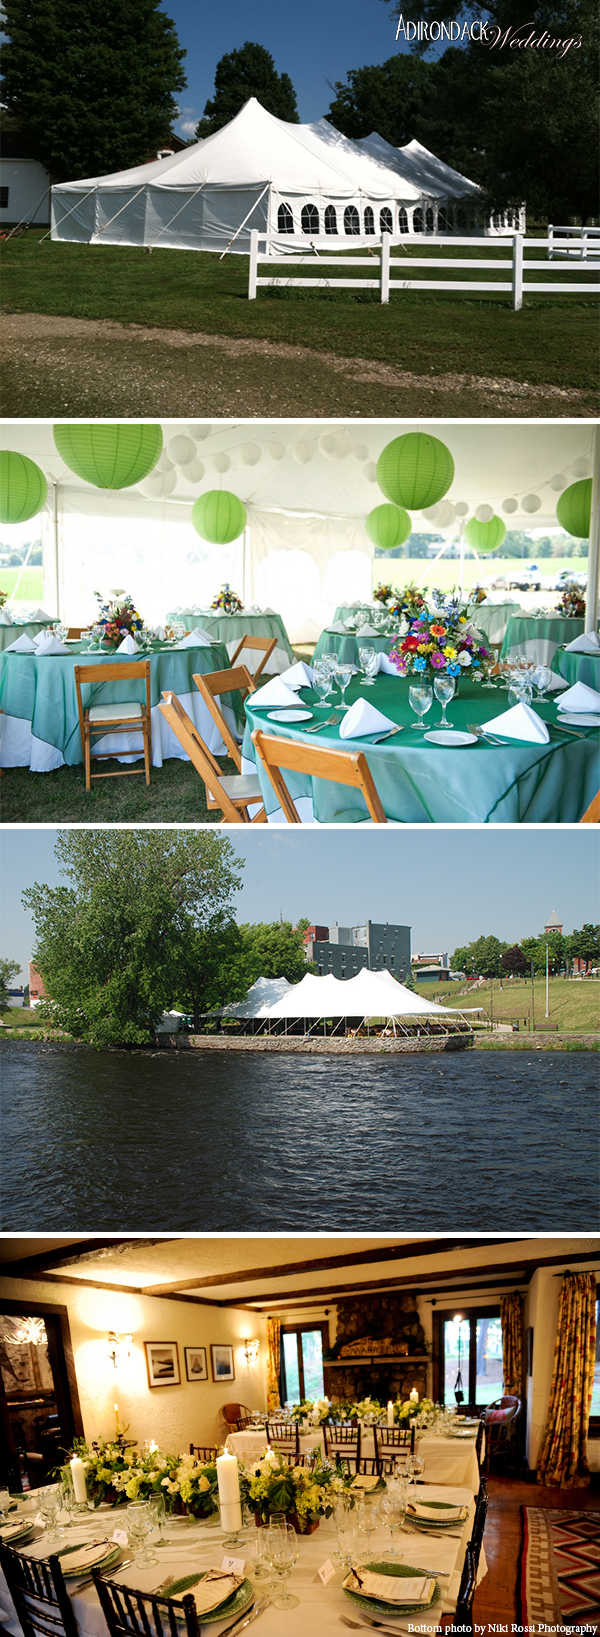 Fosters' Tent Rentals | Adirondack Weddings Magazine